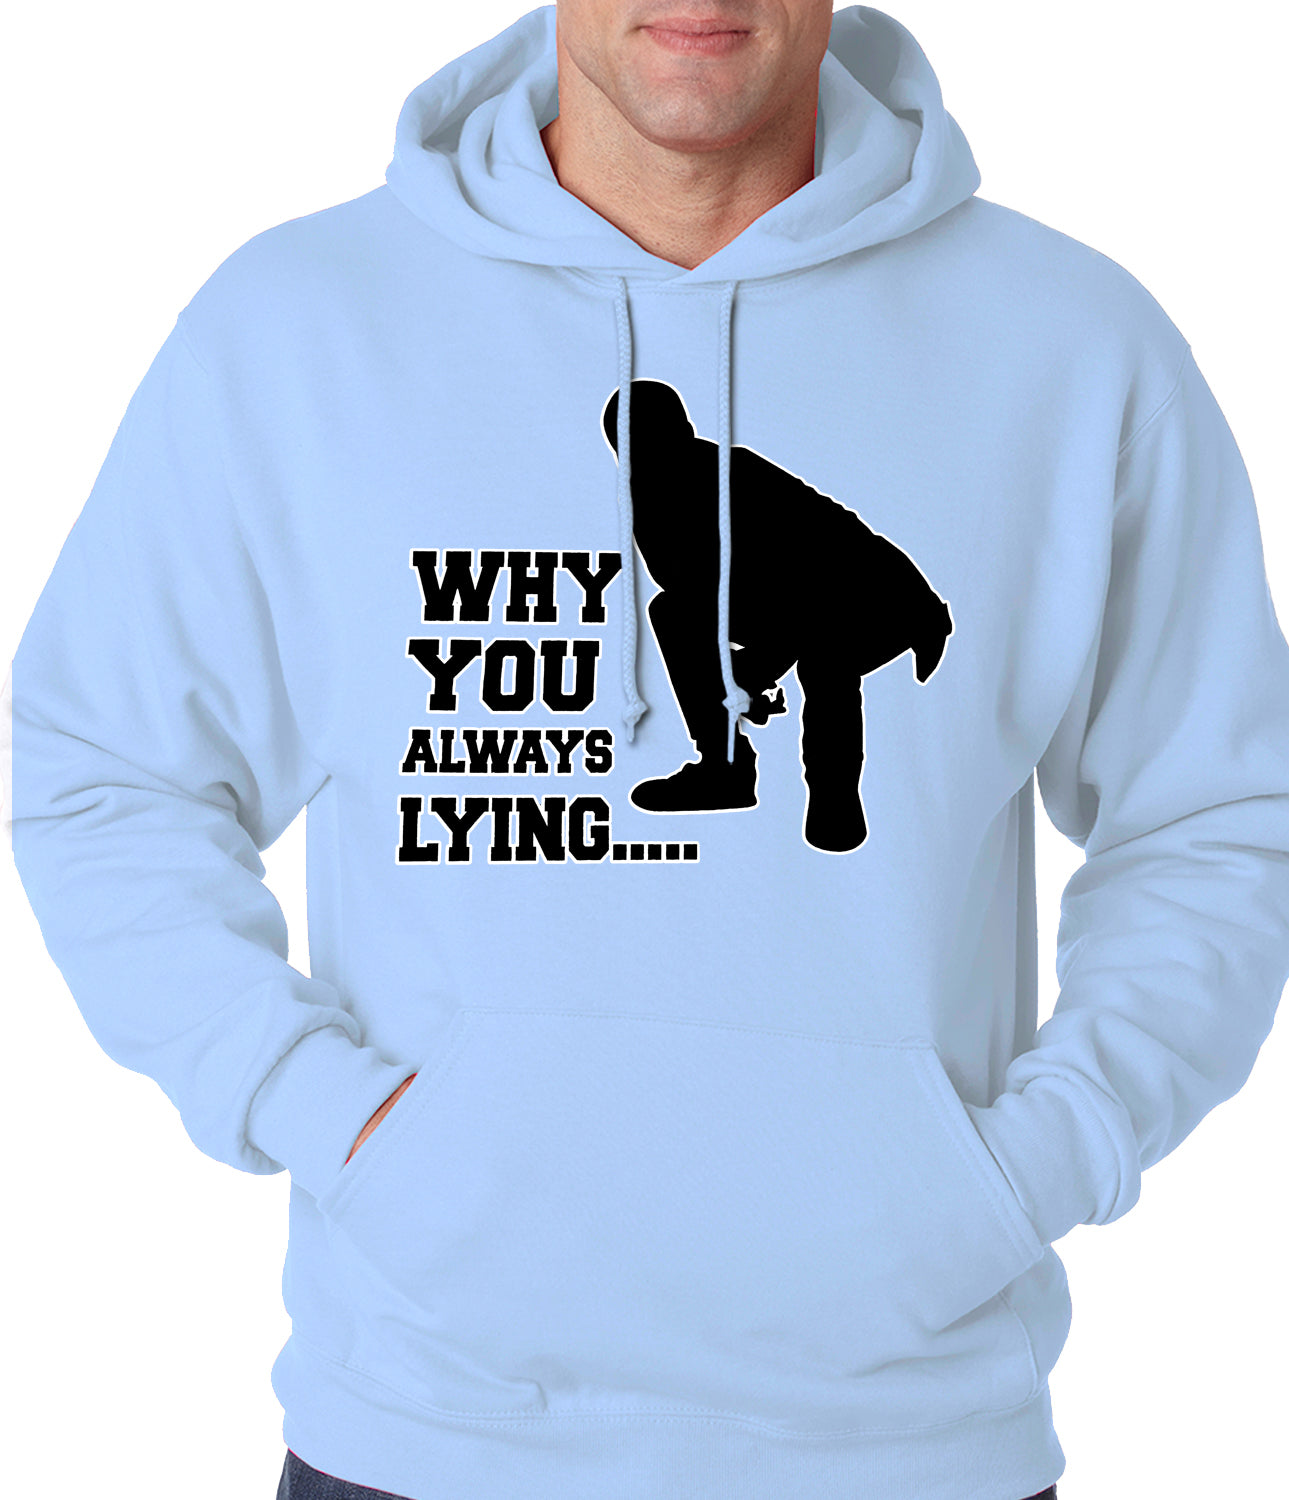 Why You Always Lying Funny Adult Hoodie